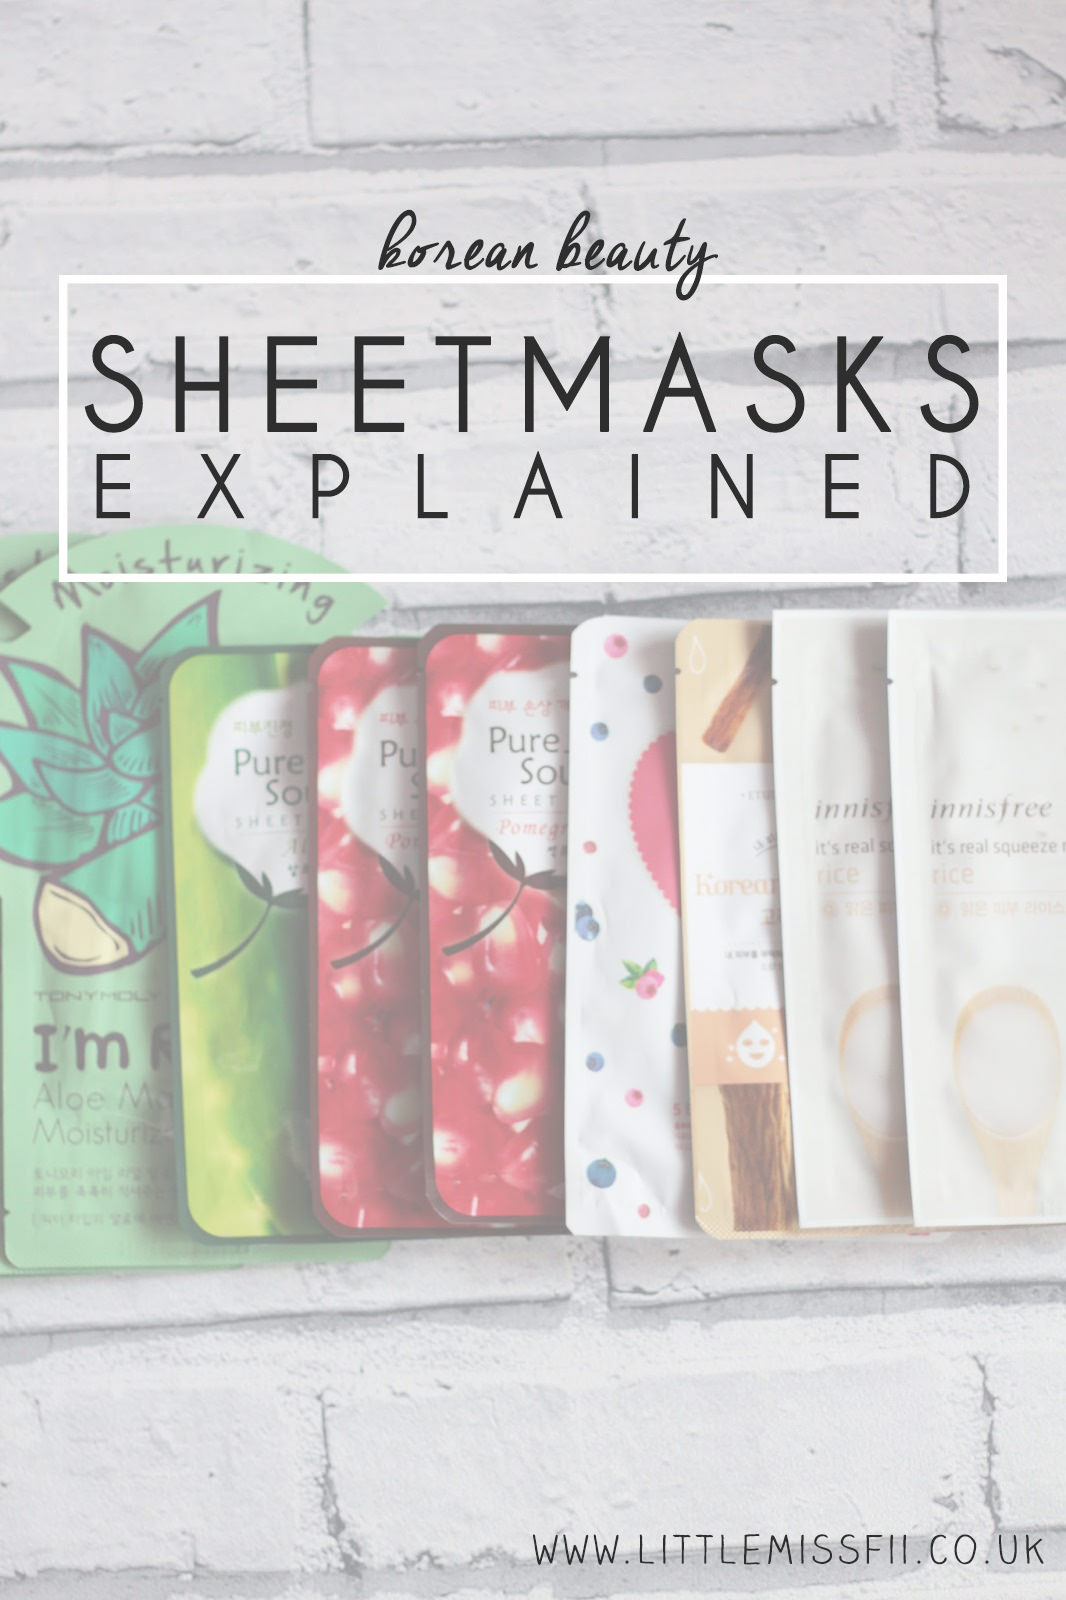 korean beauty secrets explained - sheetmasks